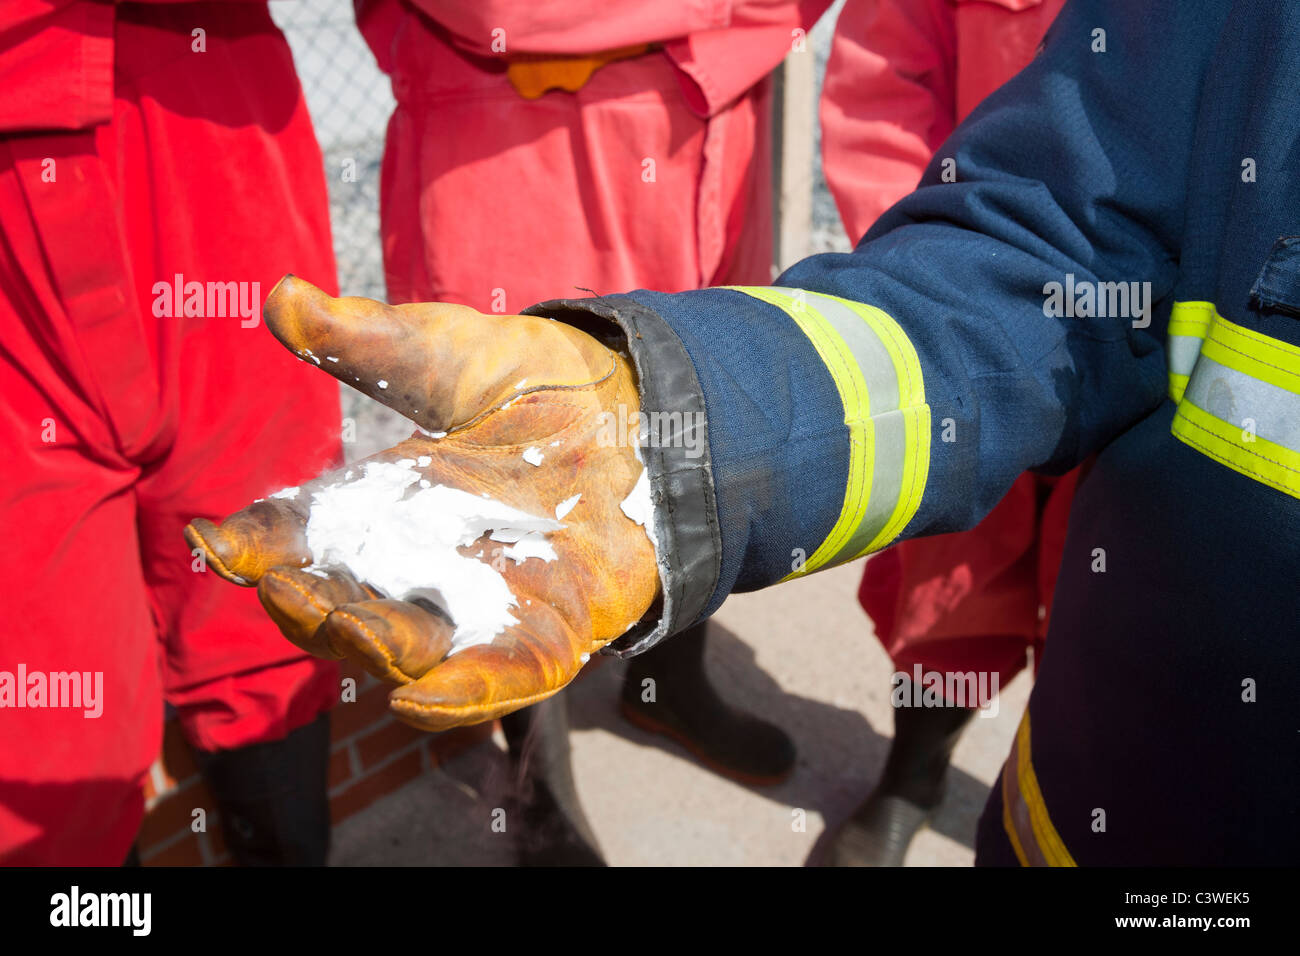 A fireman demostrates the frozen residue from a C02 fire extinguisher. - Stock Image